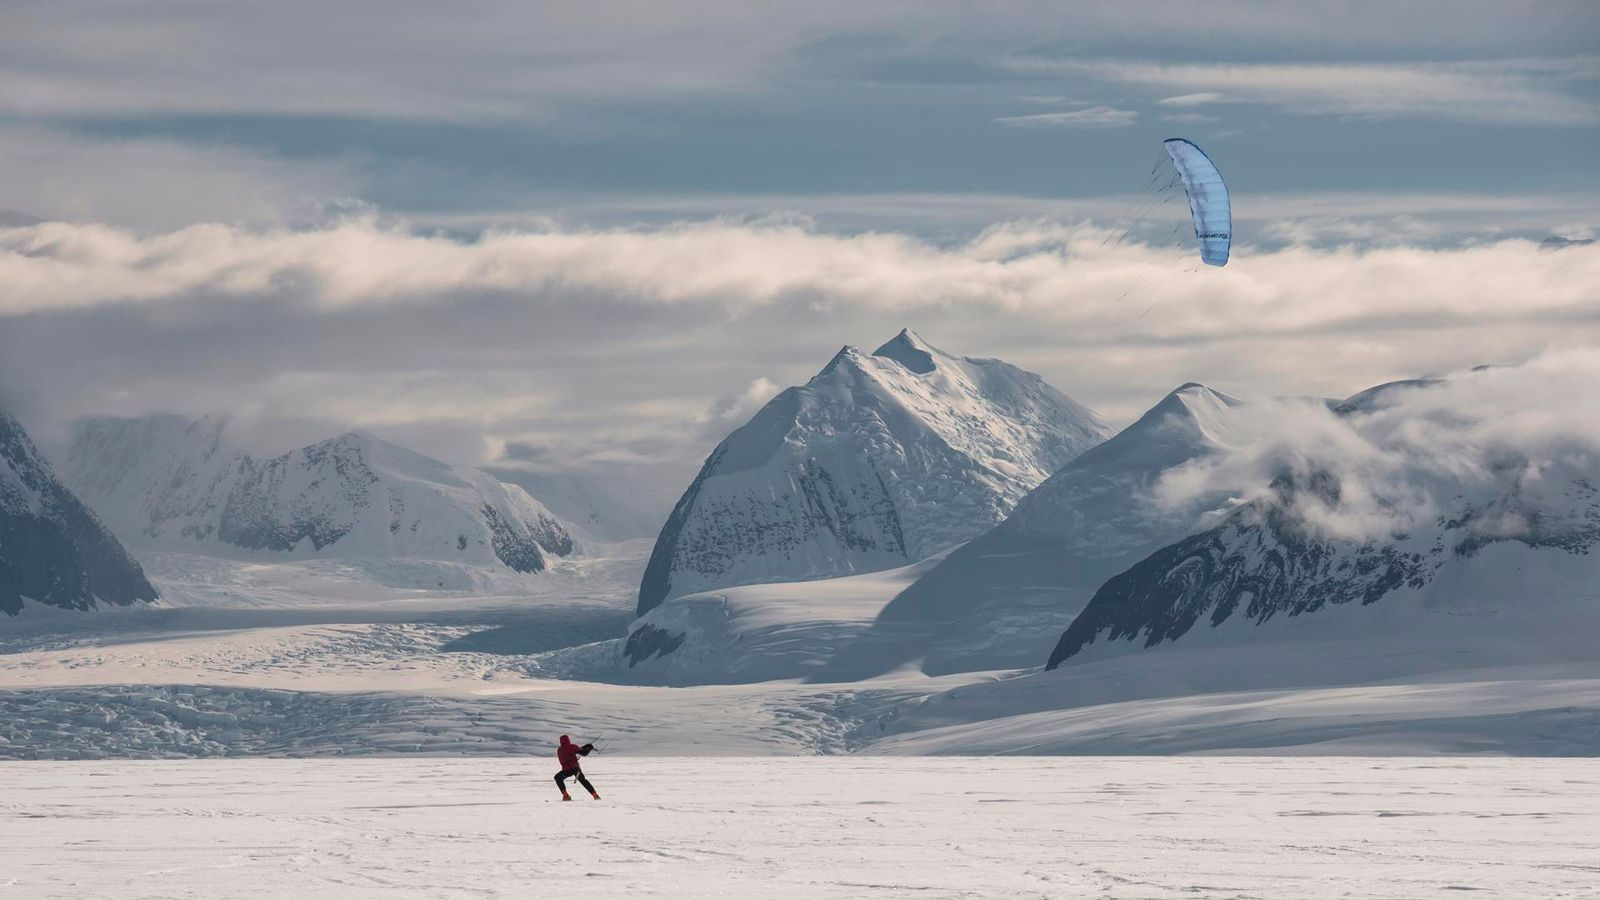 Kite Skiing on the Rutford Ice Stream